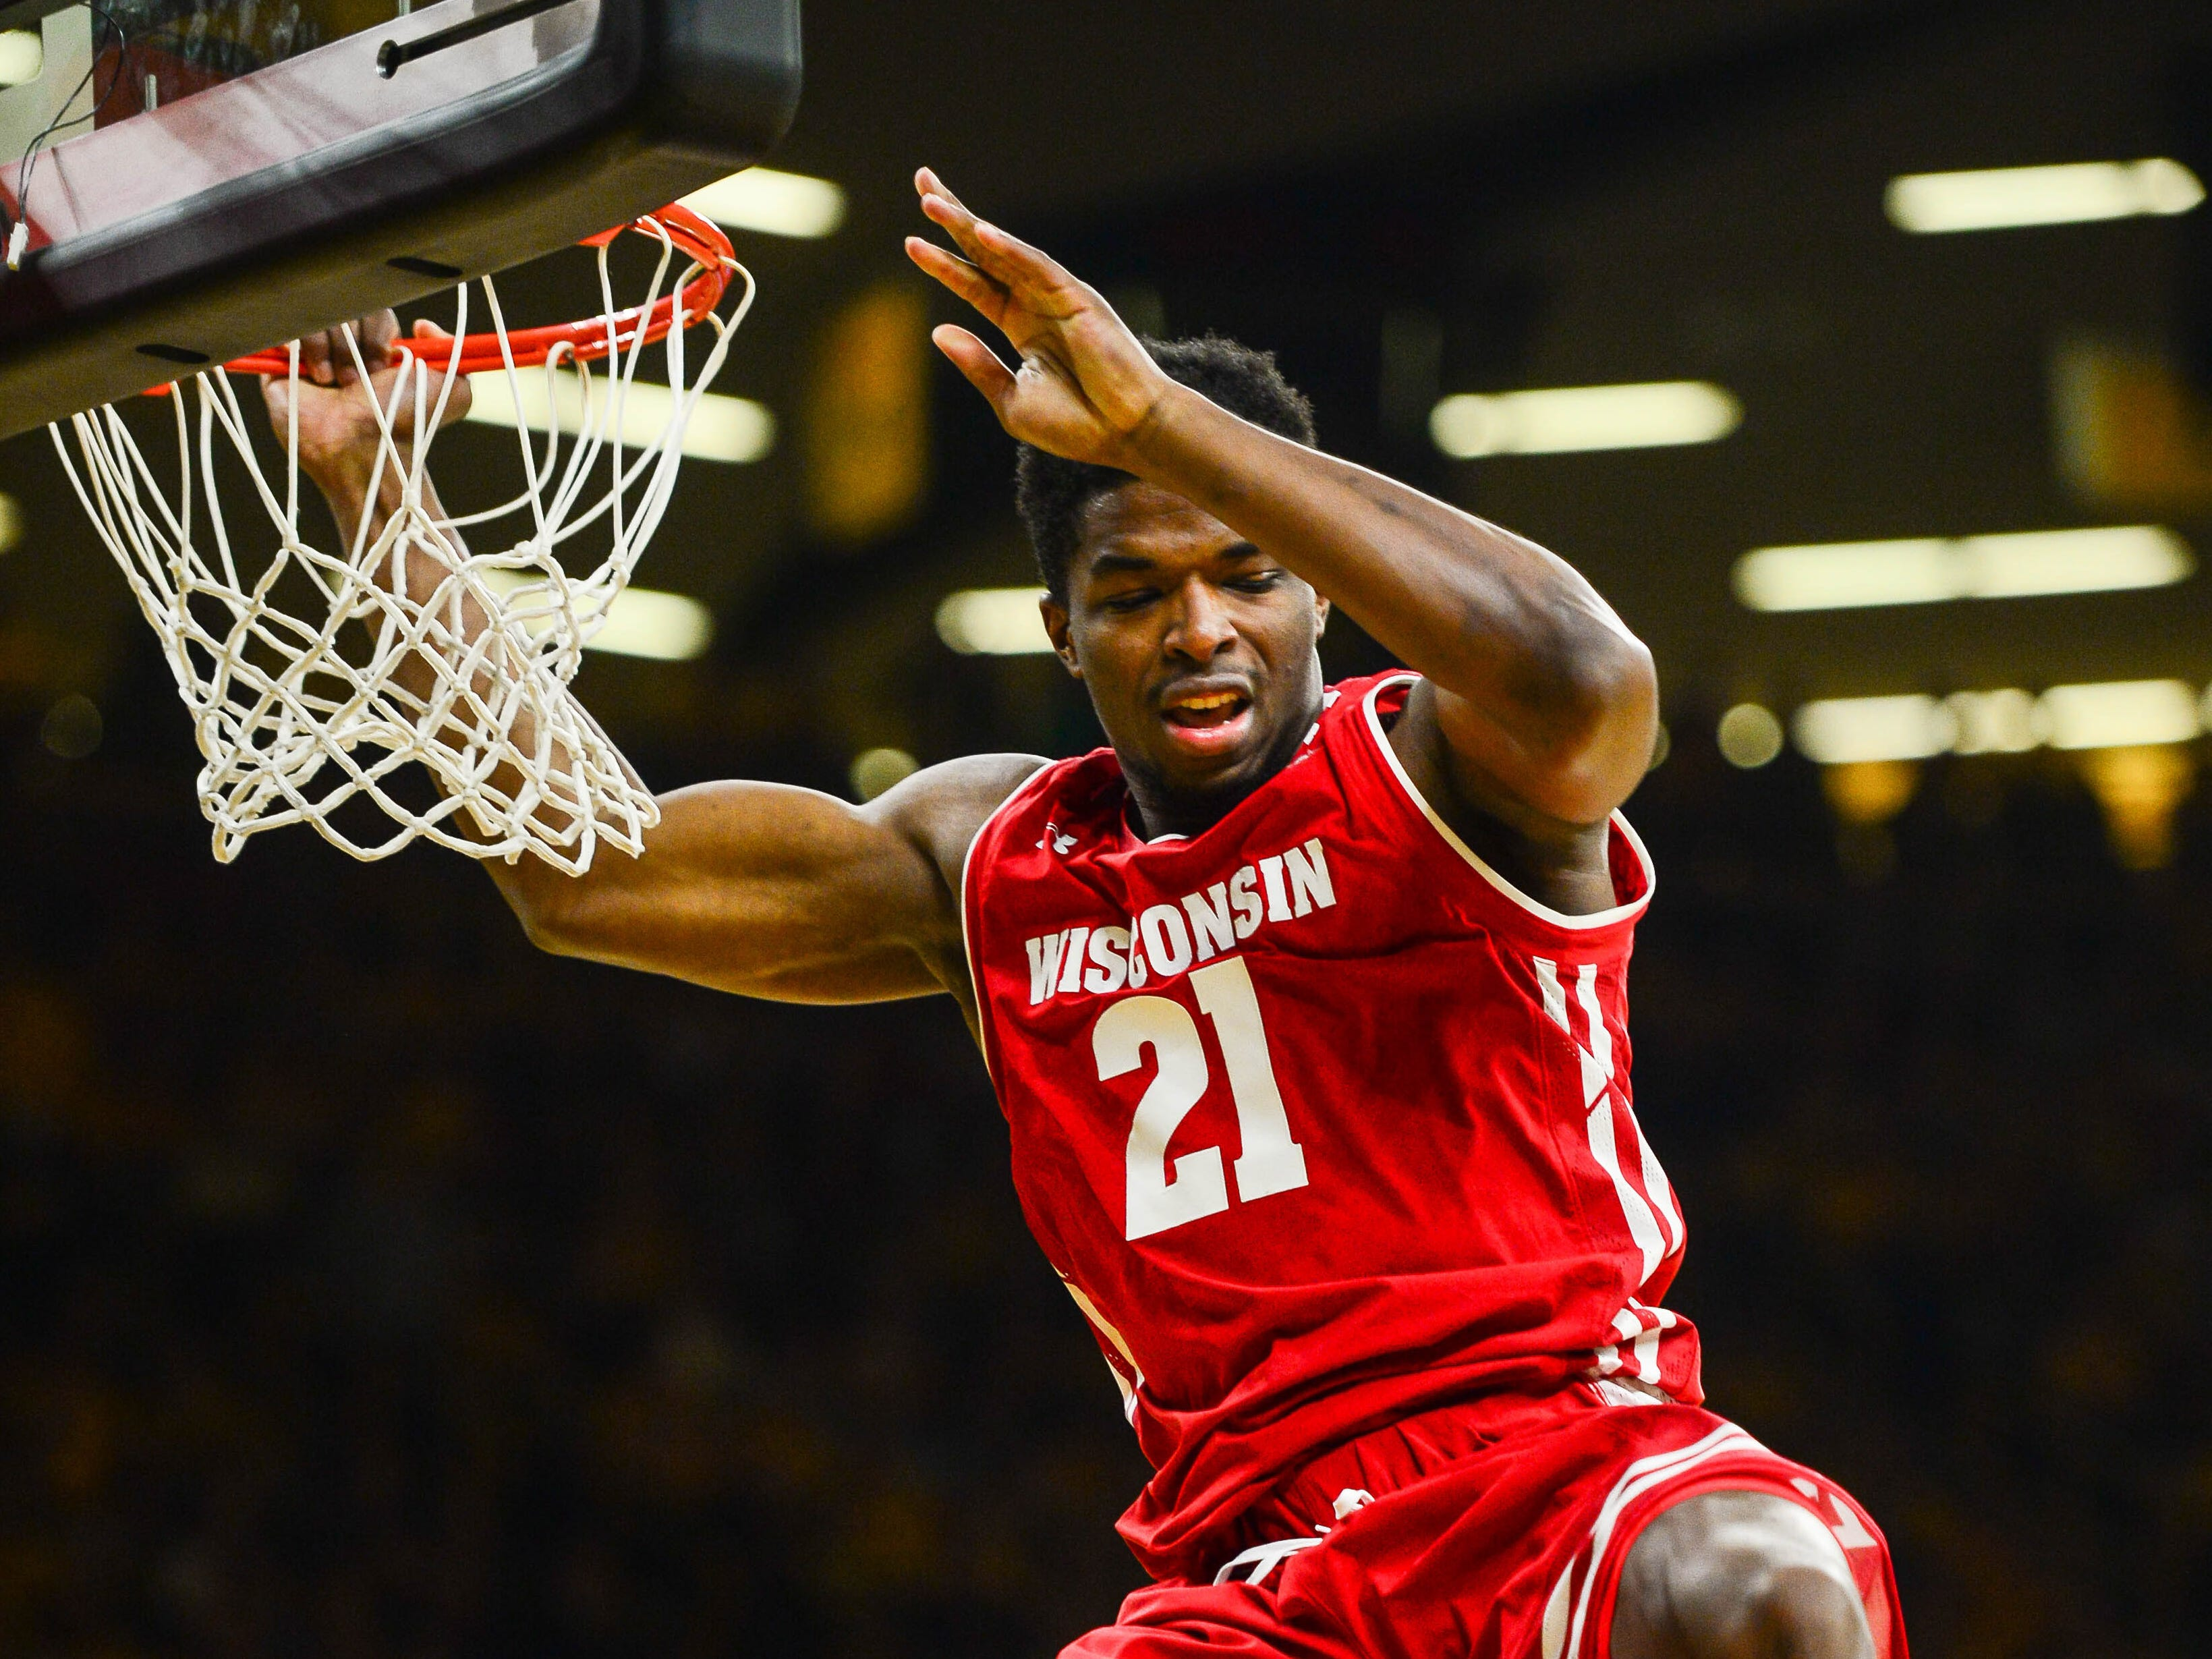 Badgers guard Khalil Iverson starts to fall back to the court after throwing down a dunk against the Hawkeyes on Friday night.